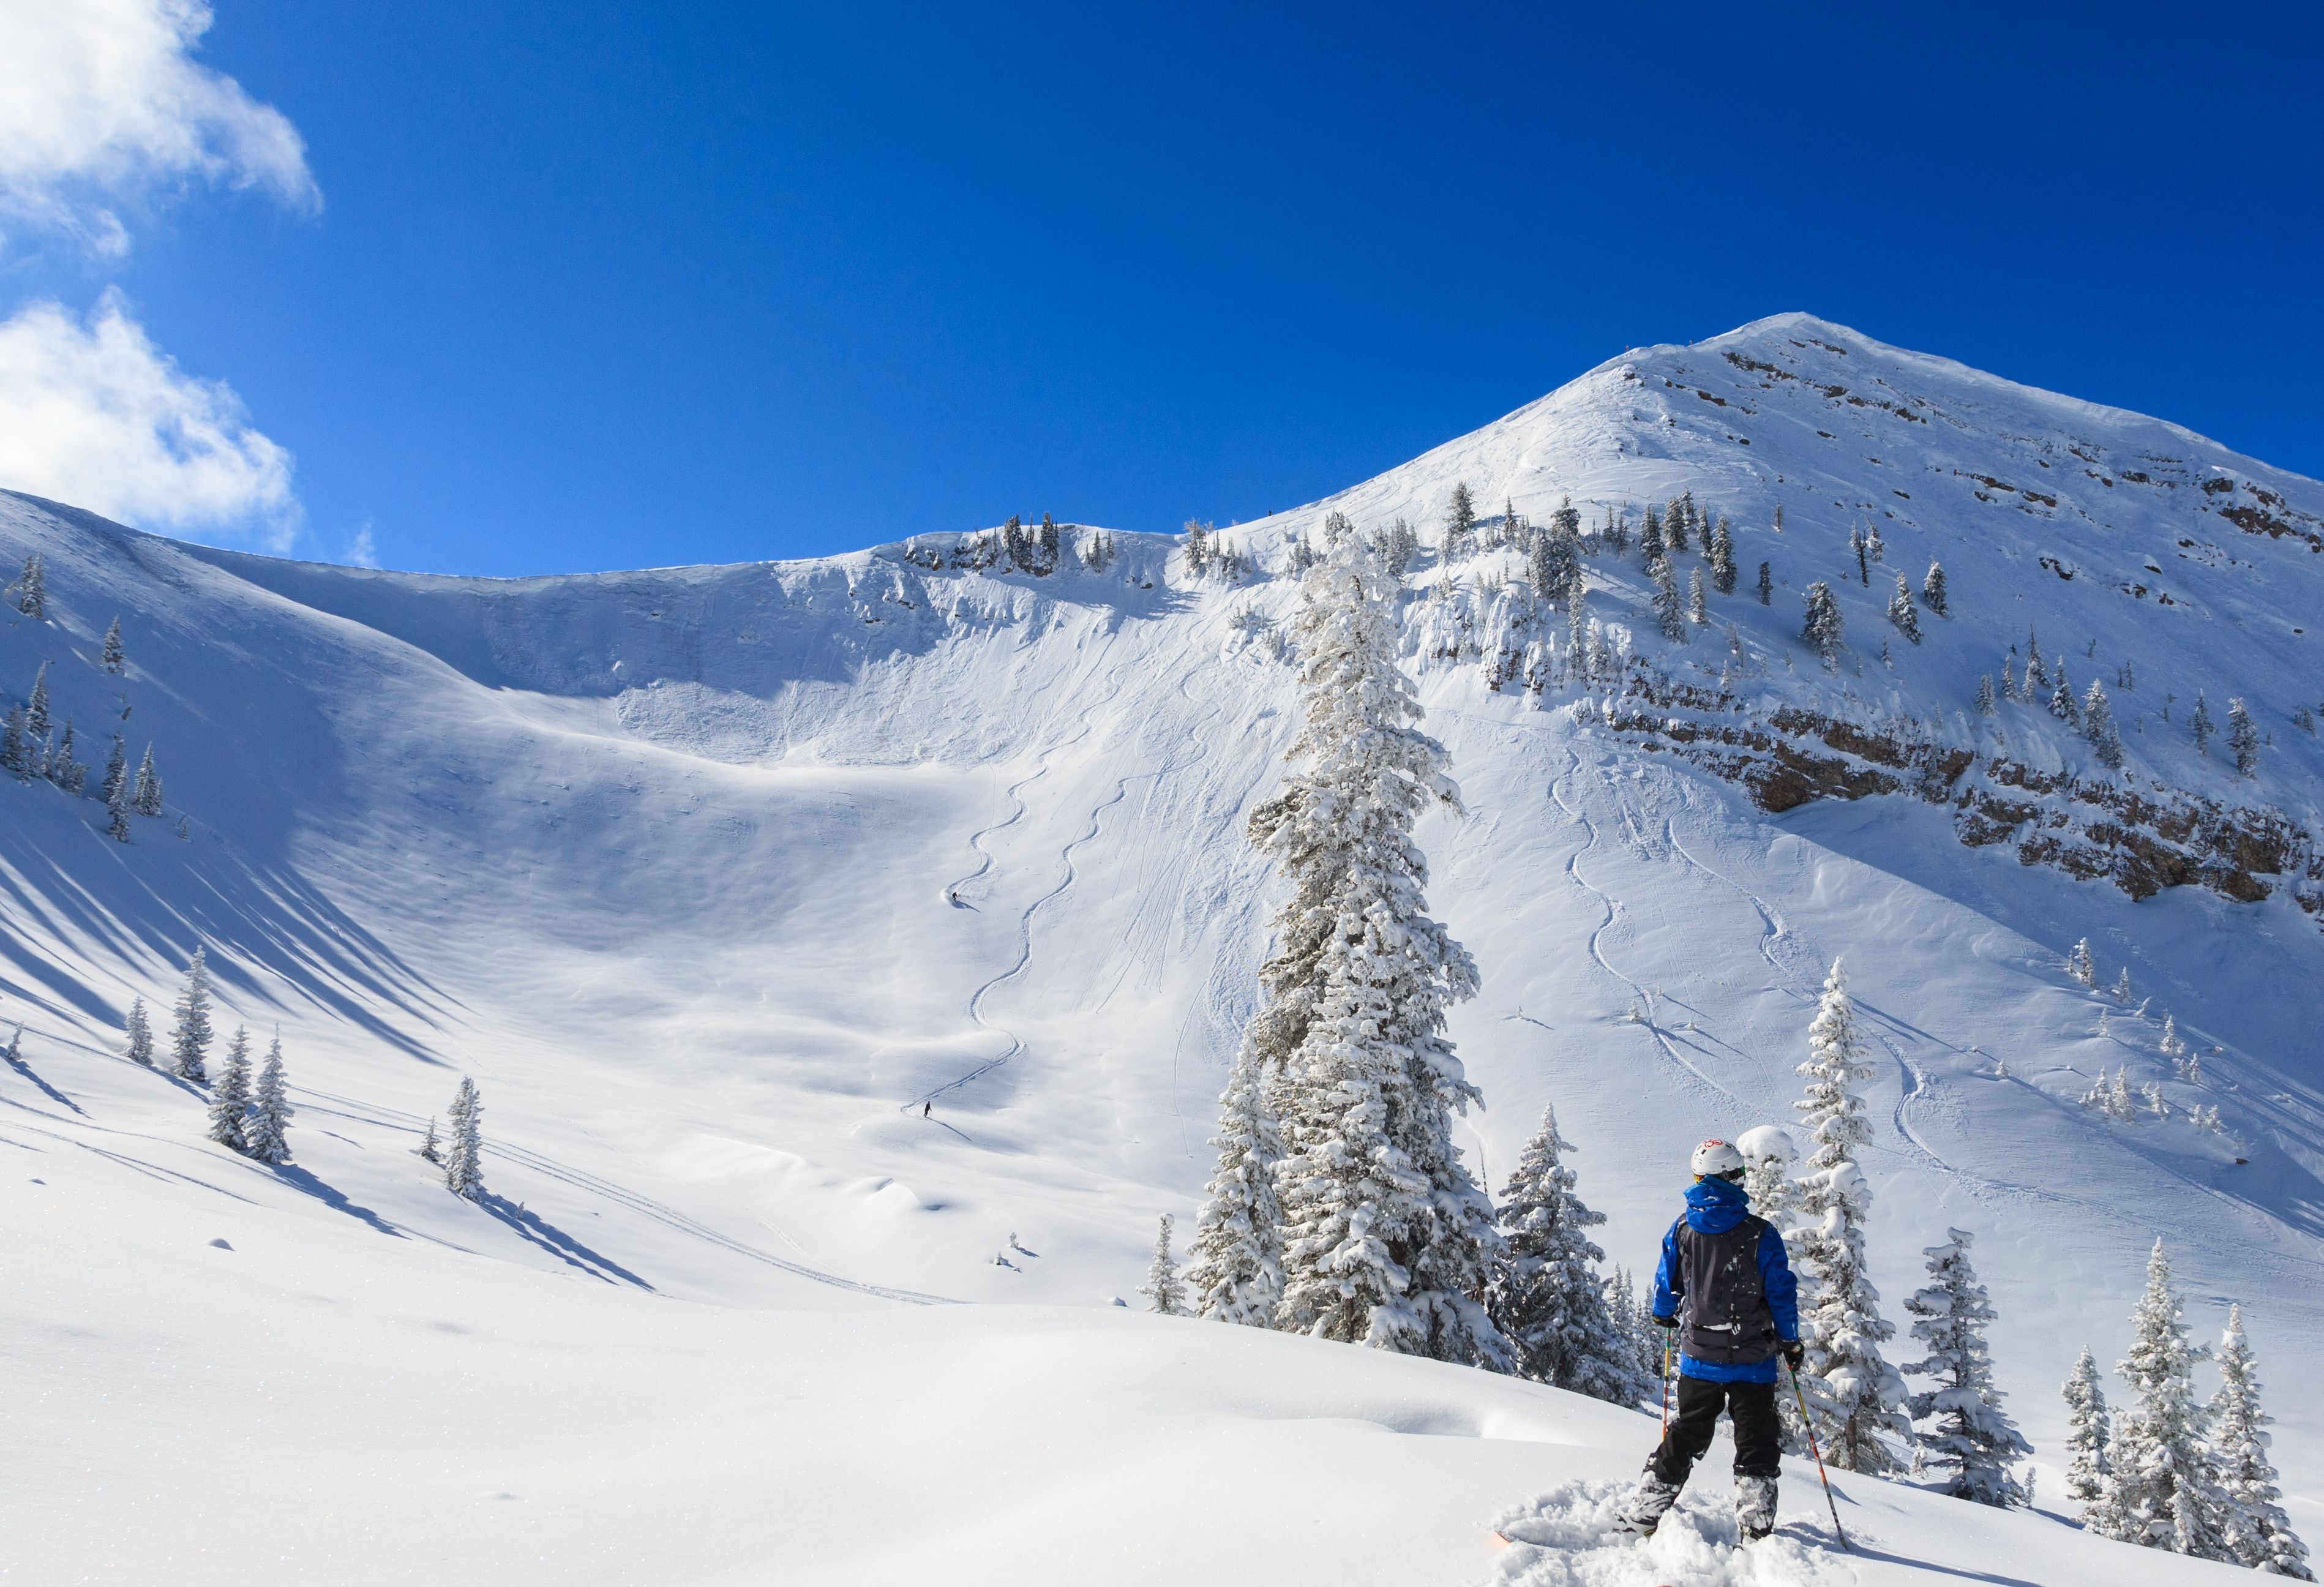 A skier watches two other skiers make tracks down a ski run at Grand Targhee Resort.